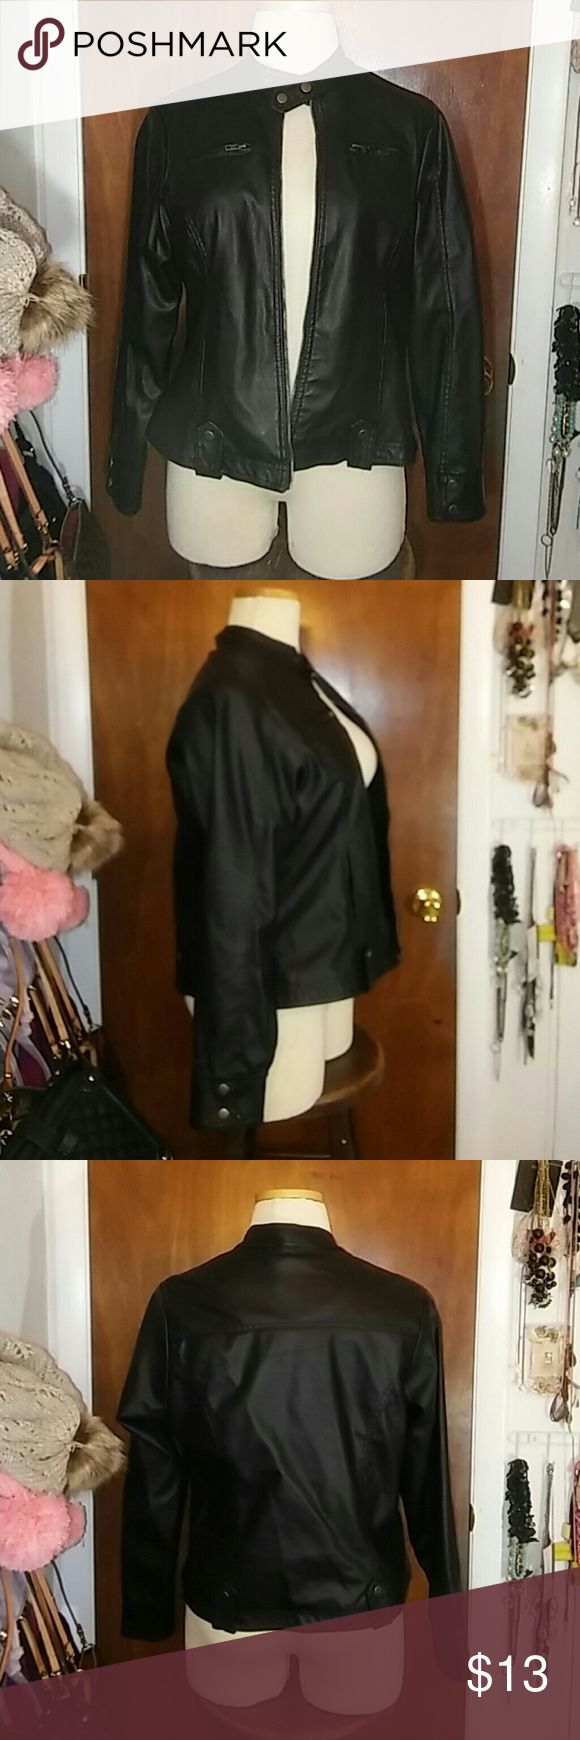 Black faux leather jacket Black jacket size 1X. Worn a couple times only. New Look Jackets & Coats